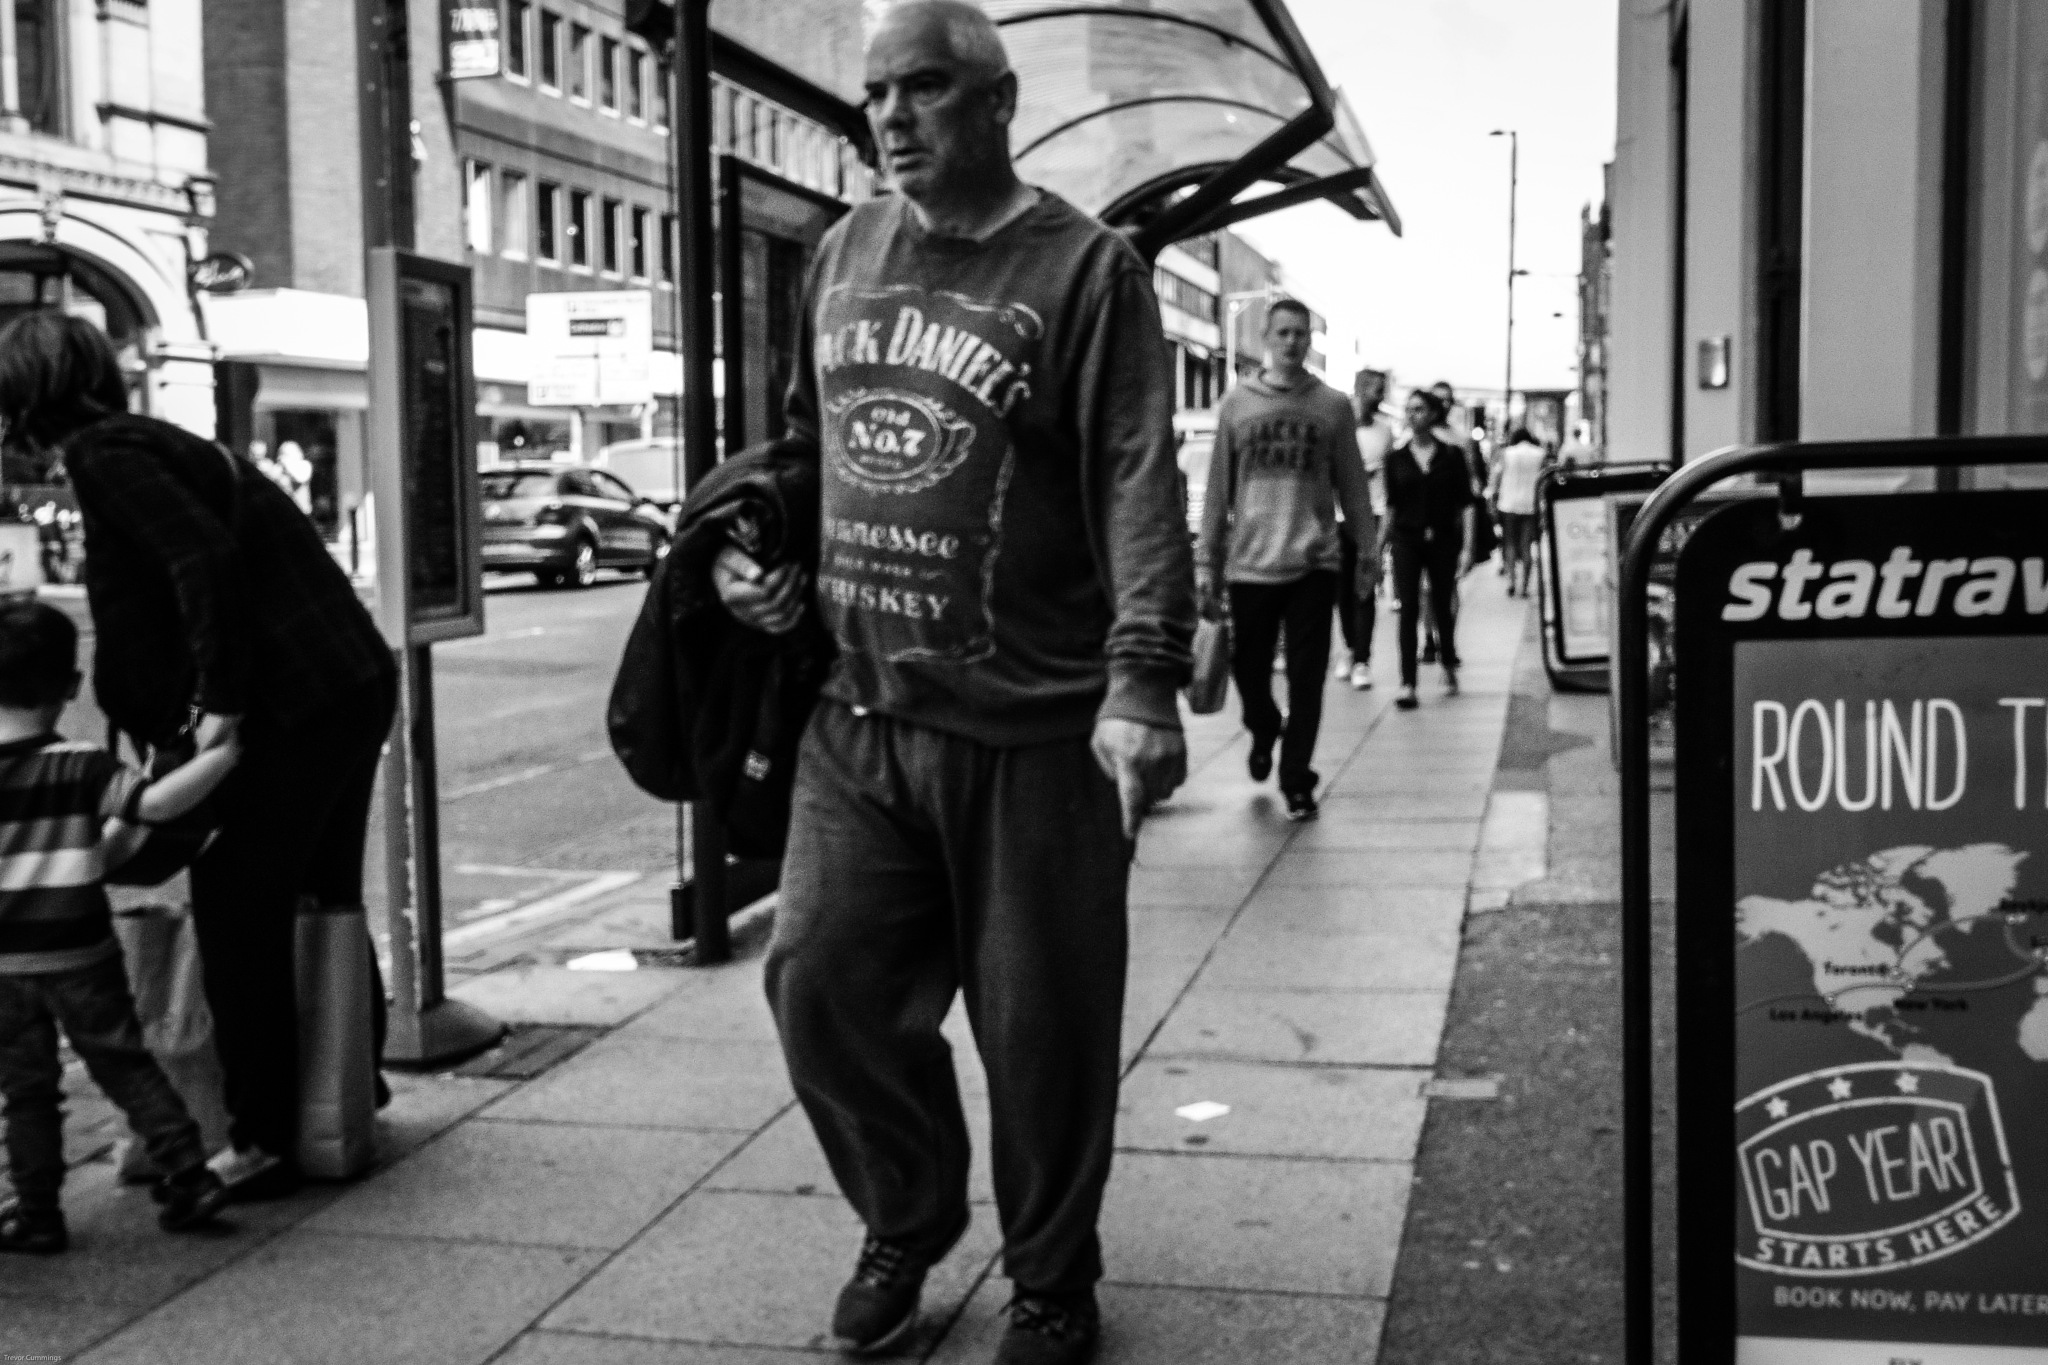 Deansgate, Manchester City Centre, Manchester, UK. by StreetCrusader